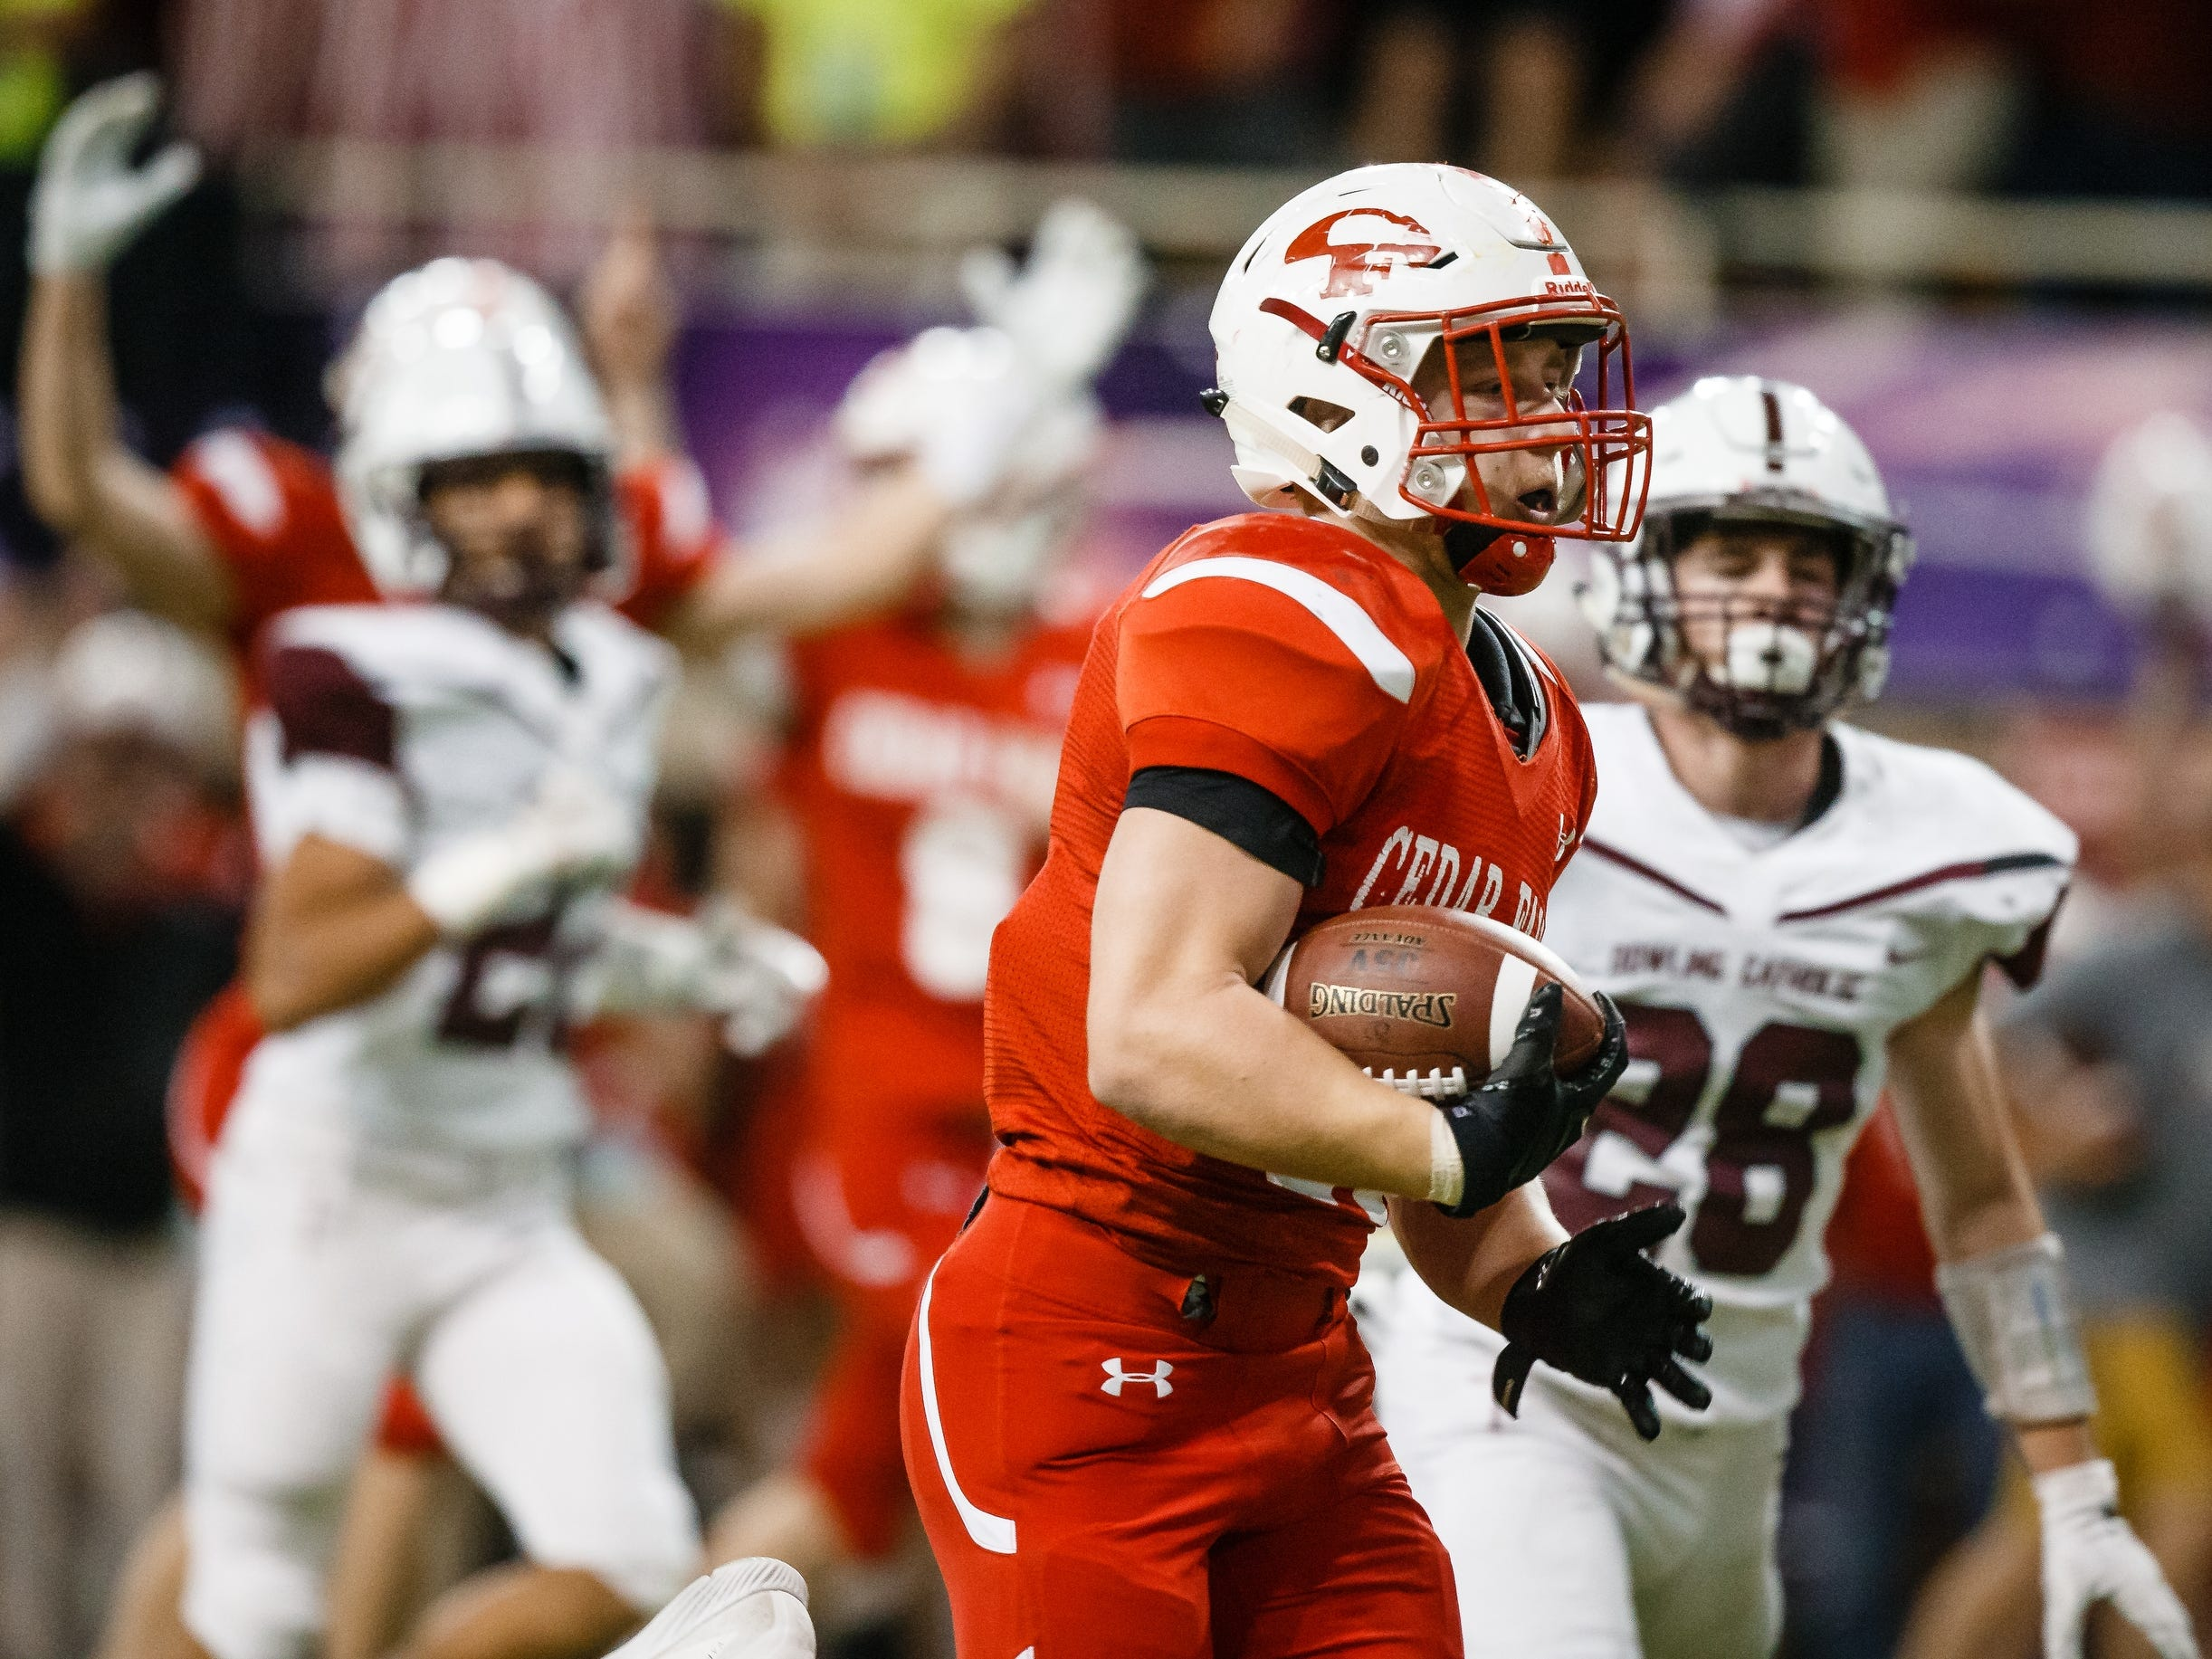 Cedar Falls's Sam Gary (19) runs in for a touchdown to put the Tigers up 6-0 during their class 4A state championship football game against Dowling Catholic on Friday, Nov. 16, 2018, in Cedar Falls. Cedar Falls takes a 13-7 lead into halftime.